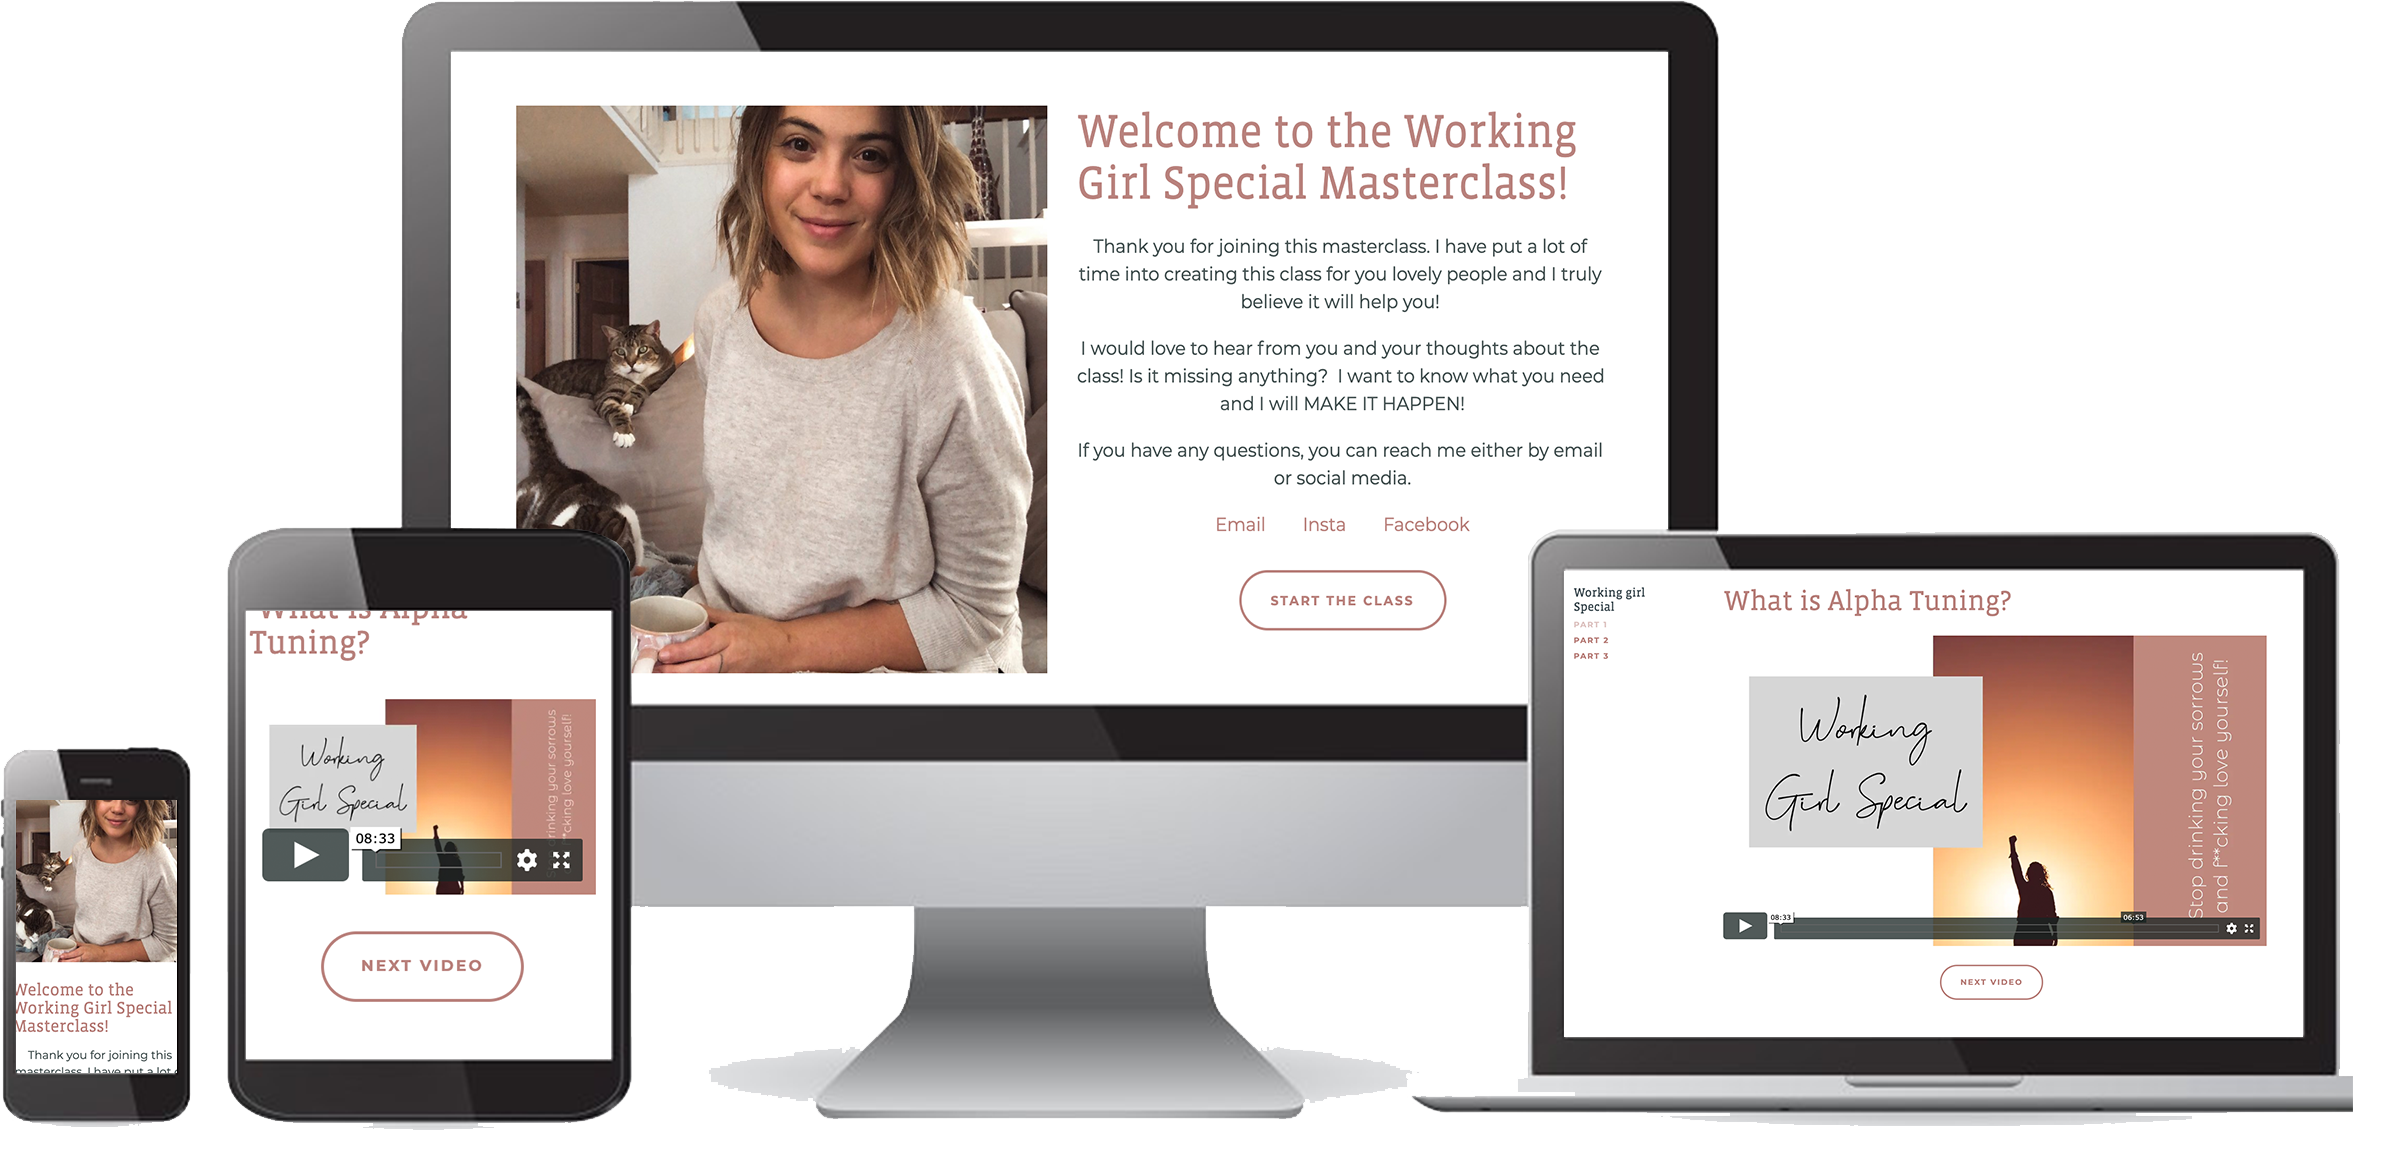 Free masterclass all about self love and owning who your are online course working girl special